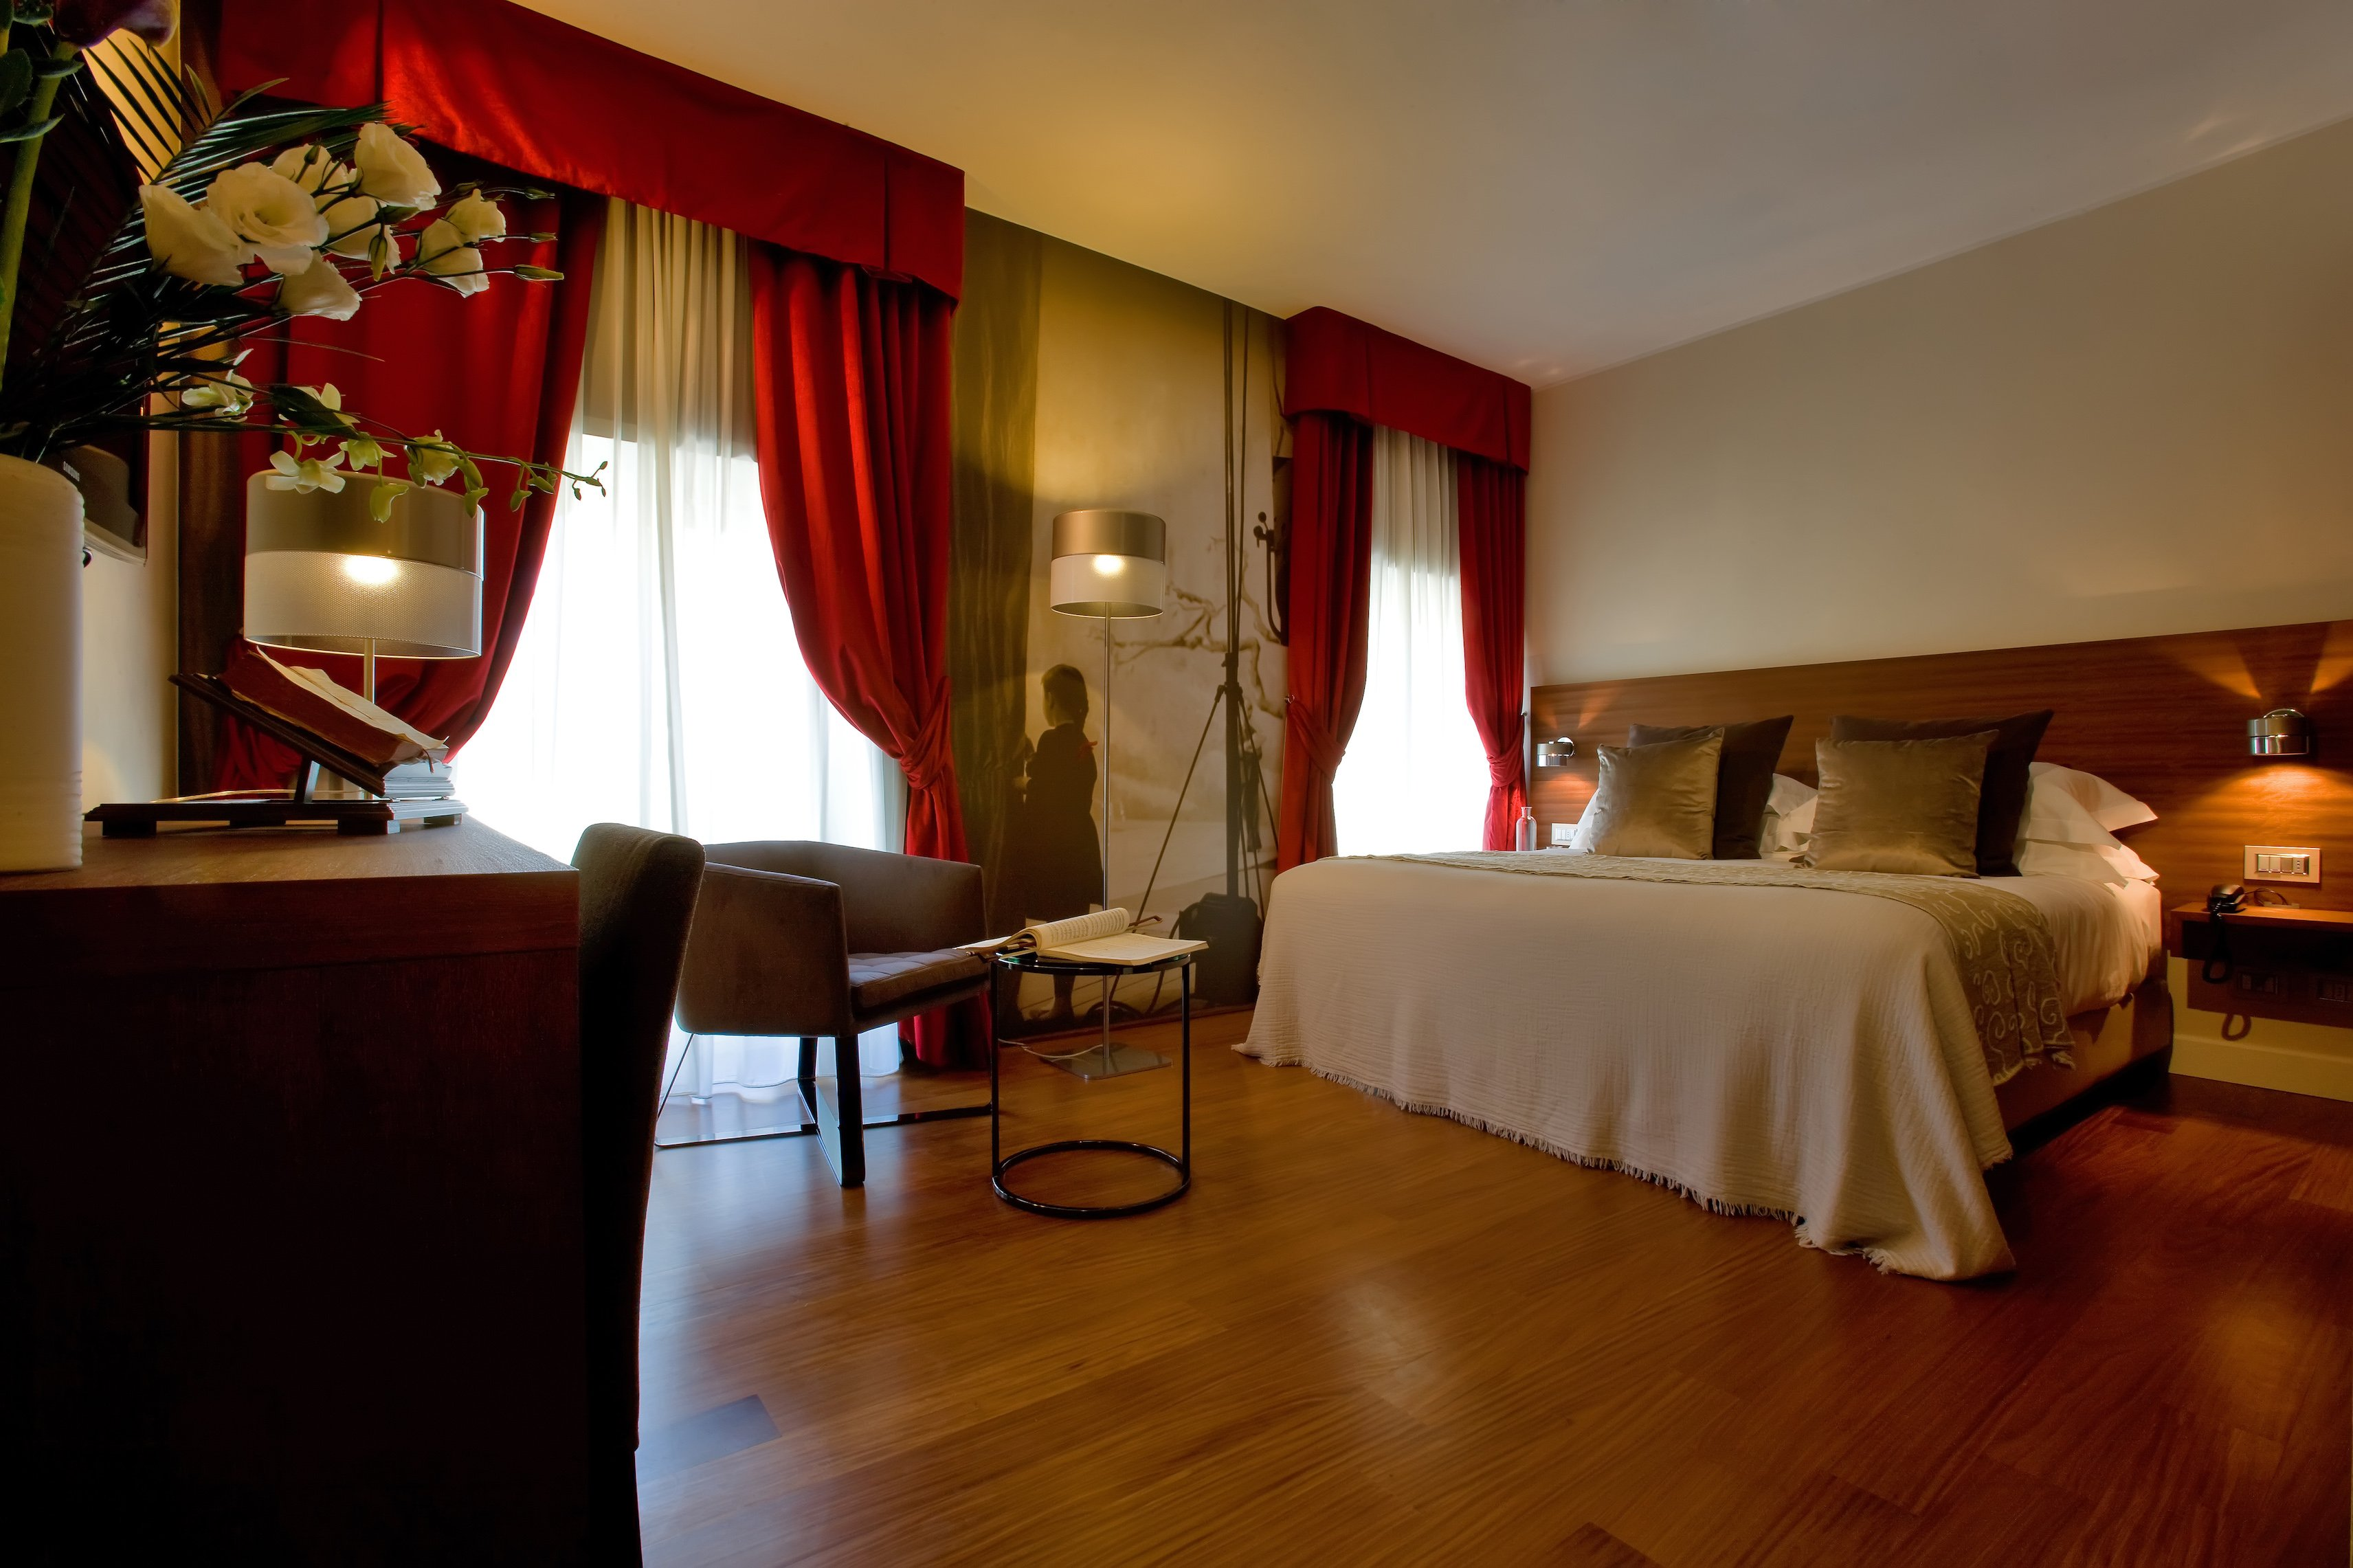 Hotel Milano Scala – Room